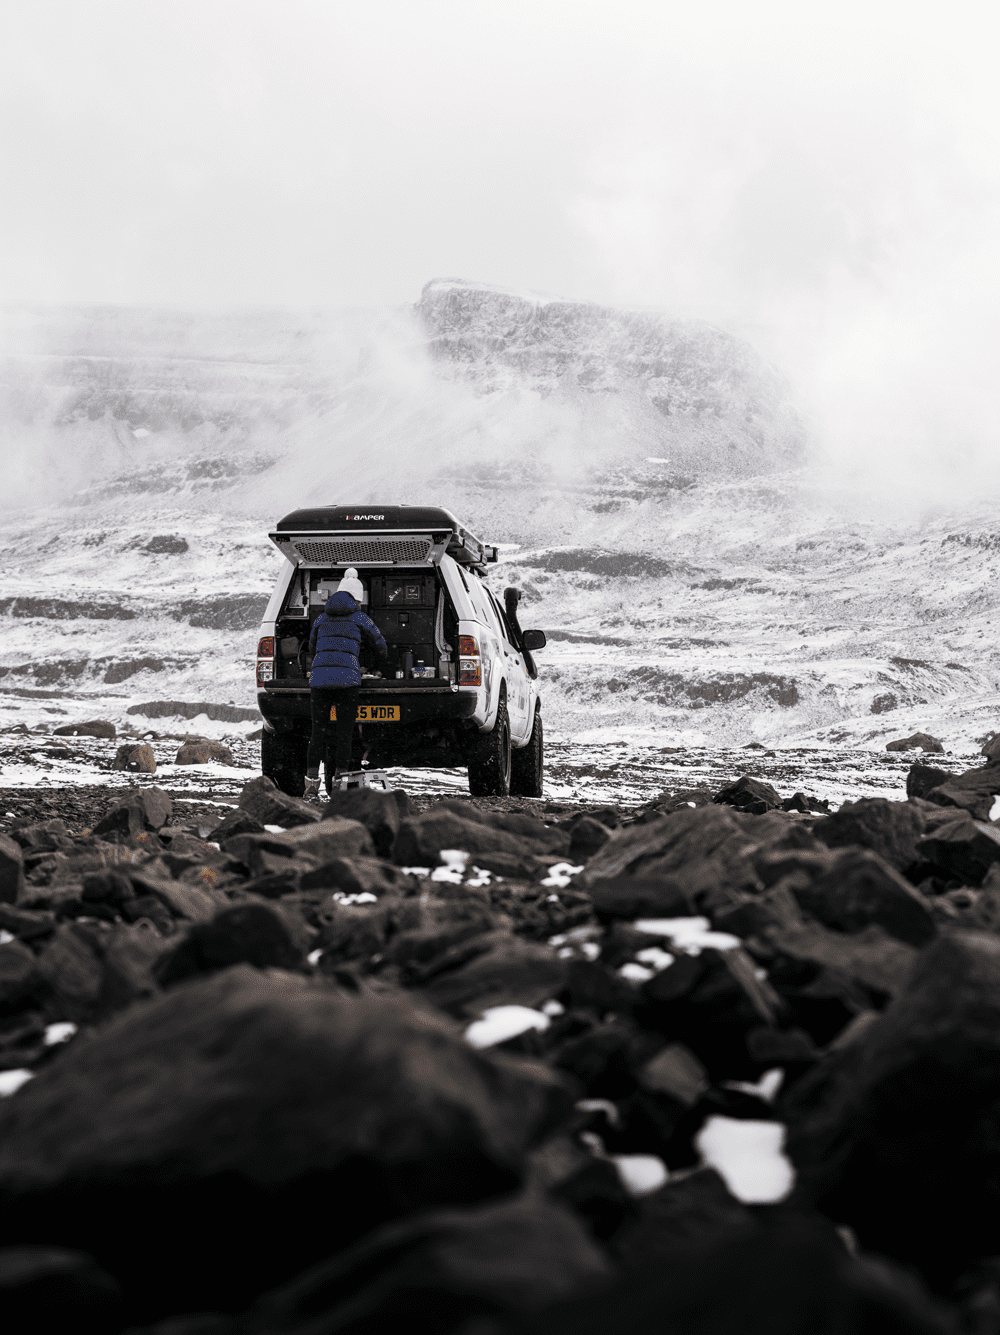 Southern Iceland 4WD camping journey